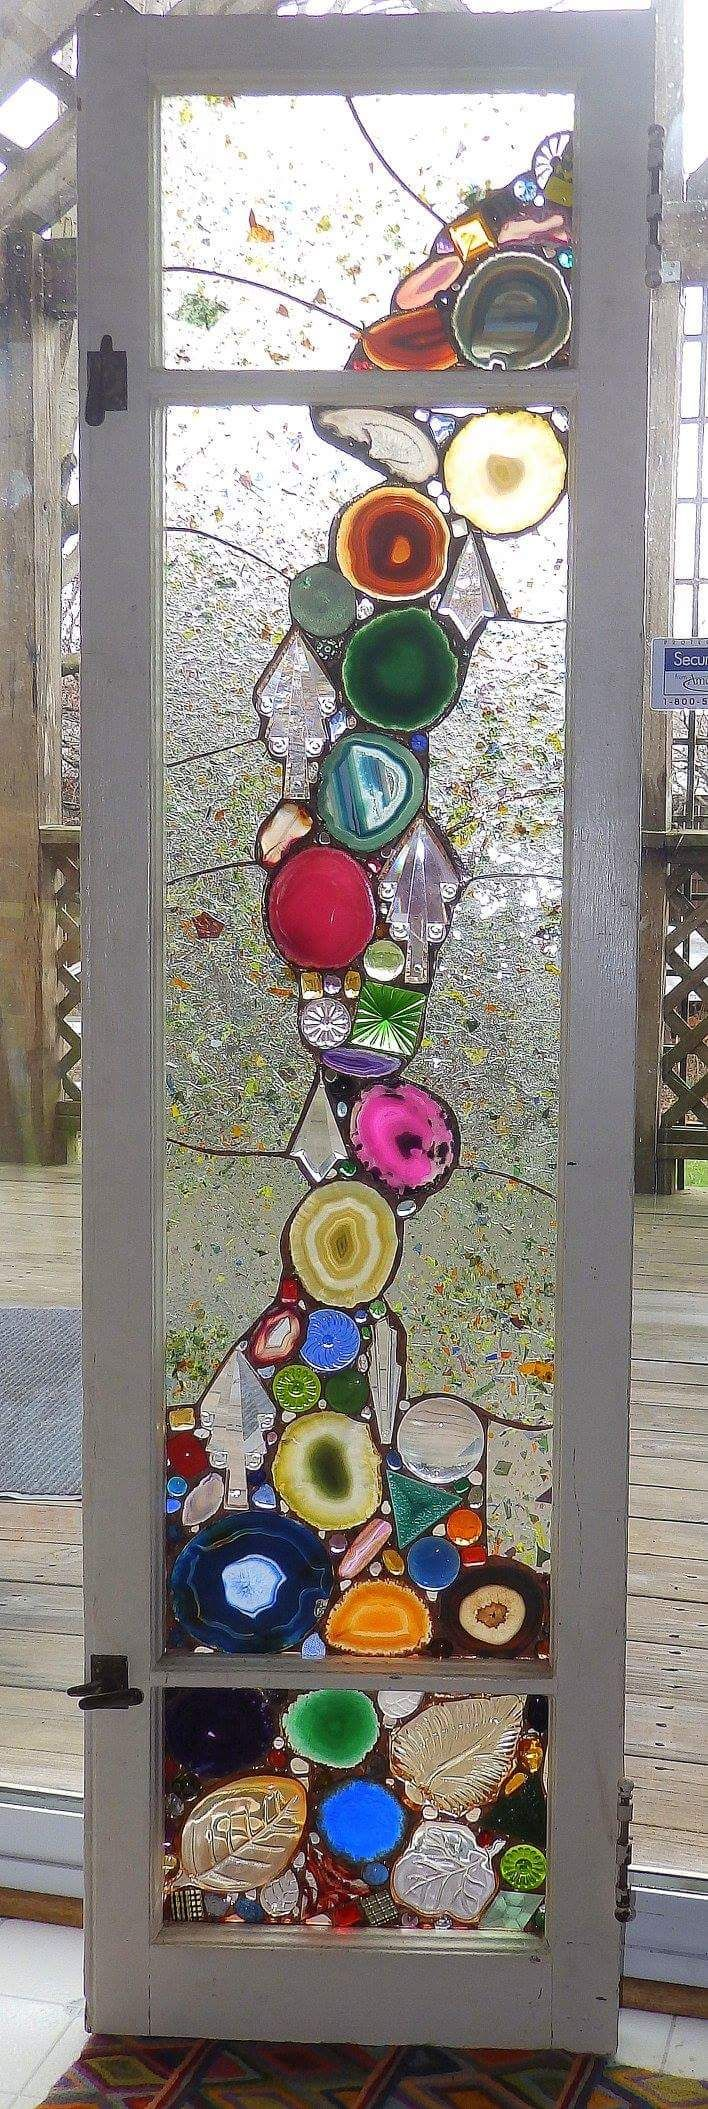 "Alison's Stained Glass - ""This is an advanced form of stained glass, where I use antique/vintage glass inclusions in each piece. All individually foiled and soldered with classic stained glass as the background. I also recycle old window sashes to use as my frames"" #StainedGlassBathroom"